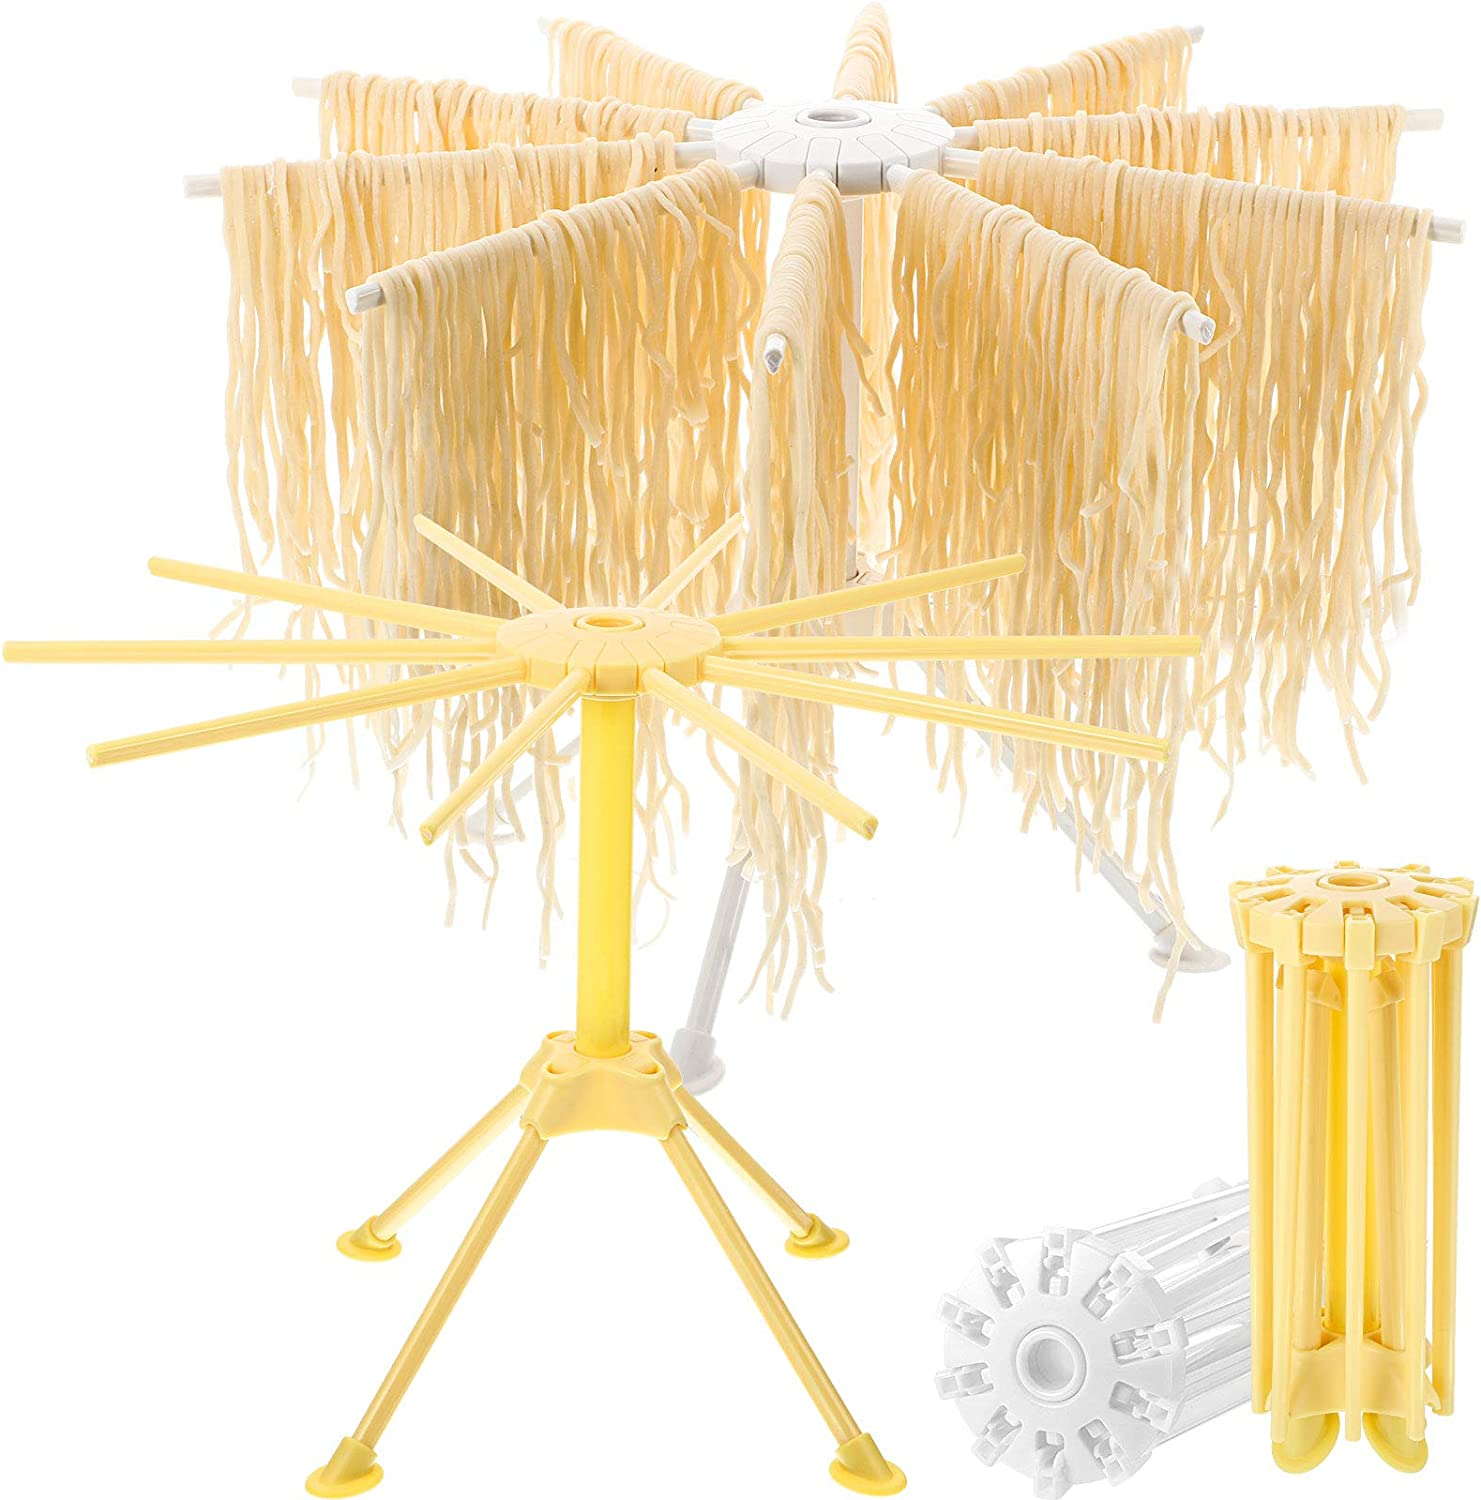 Some Max 47% OFF reservation 2 Pieces Handmade Pasta Drying Han Maker Collapsible Noodle Rack